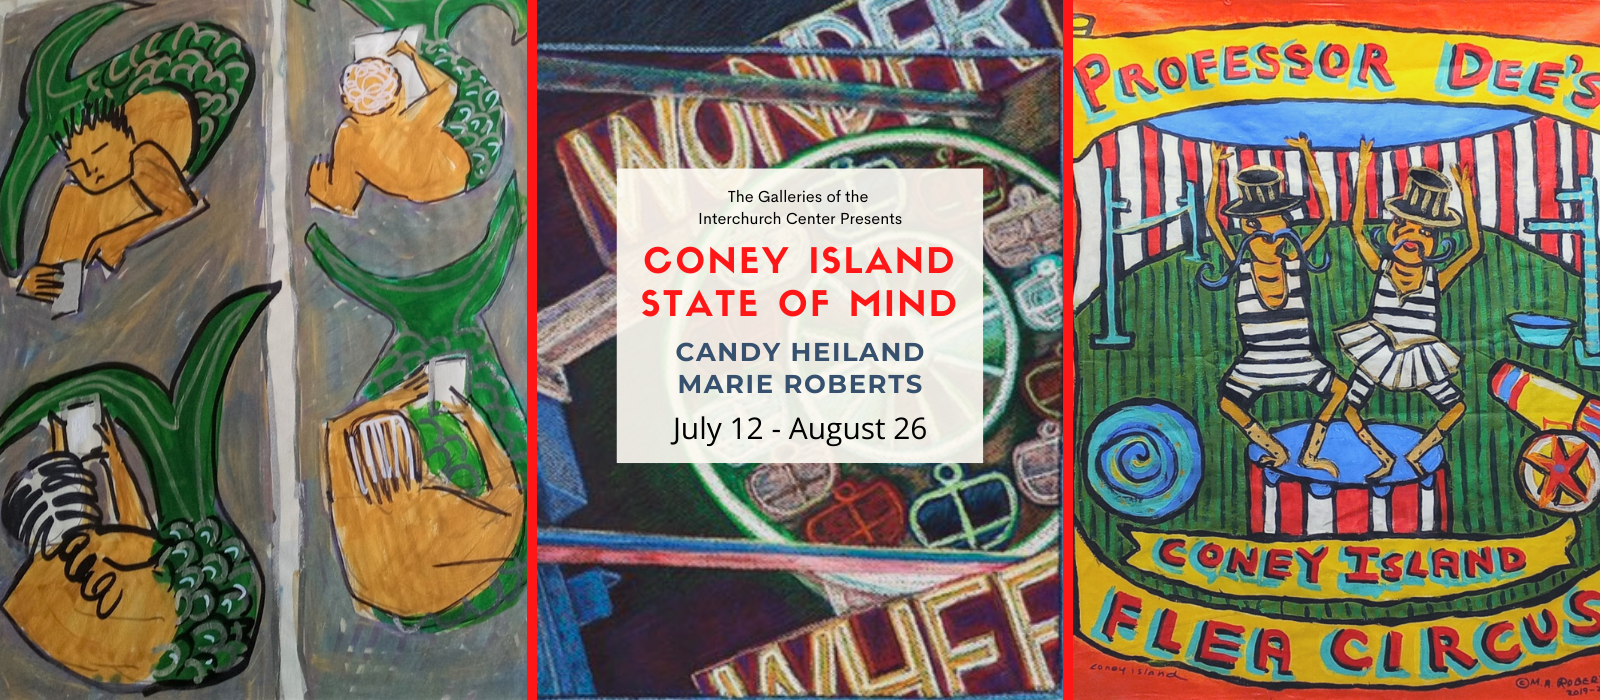 CISOM Summer Art Exhibition featuring art by Candy Heiland and Marie Roberts.